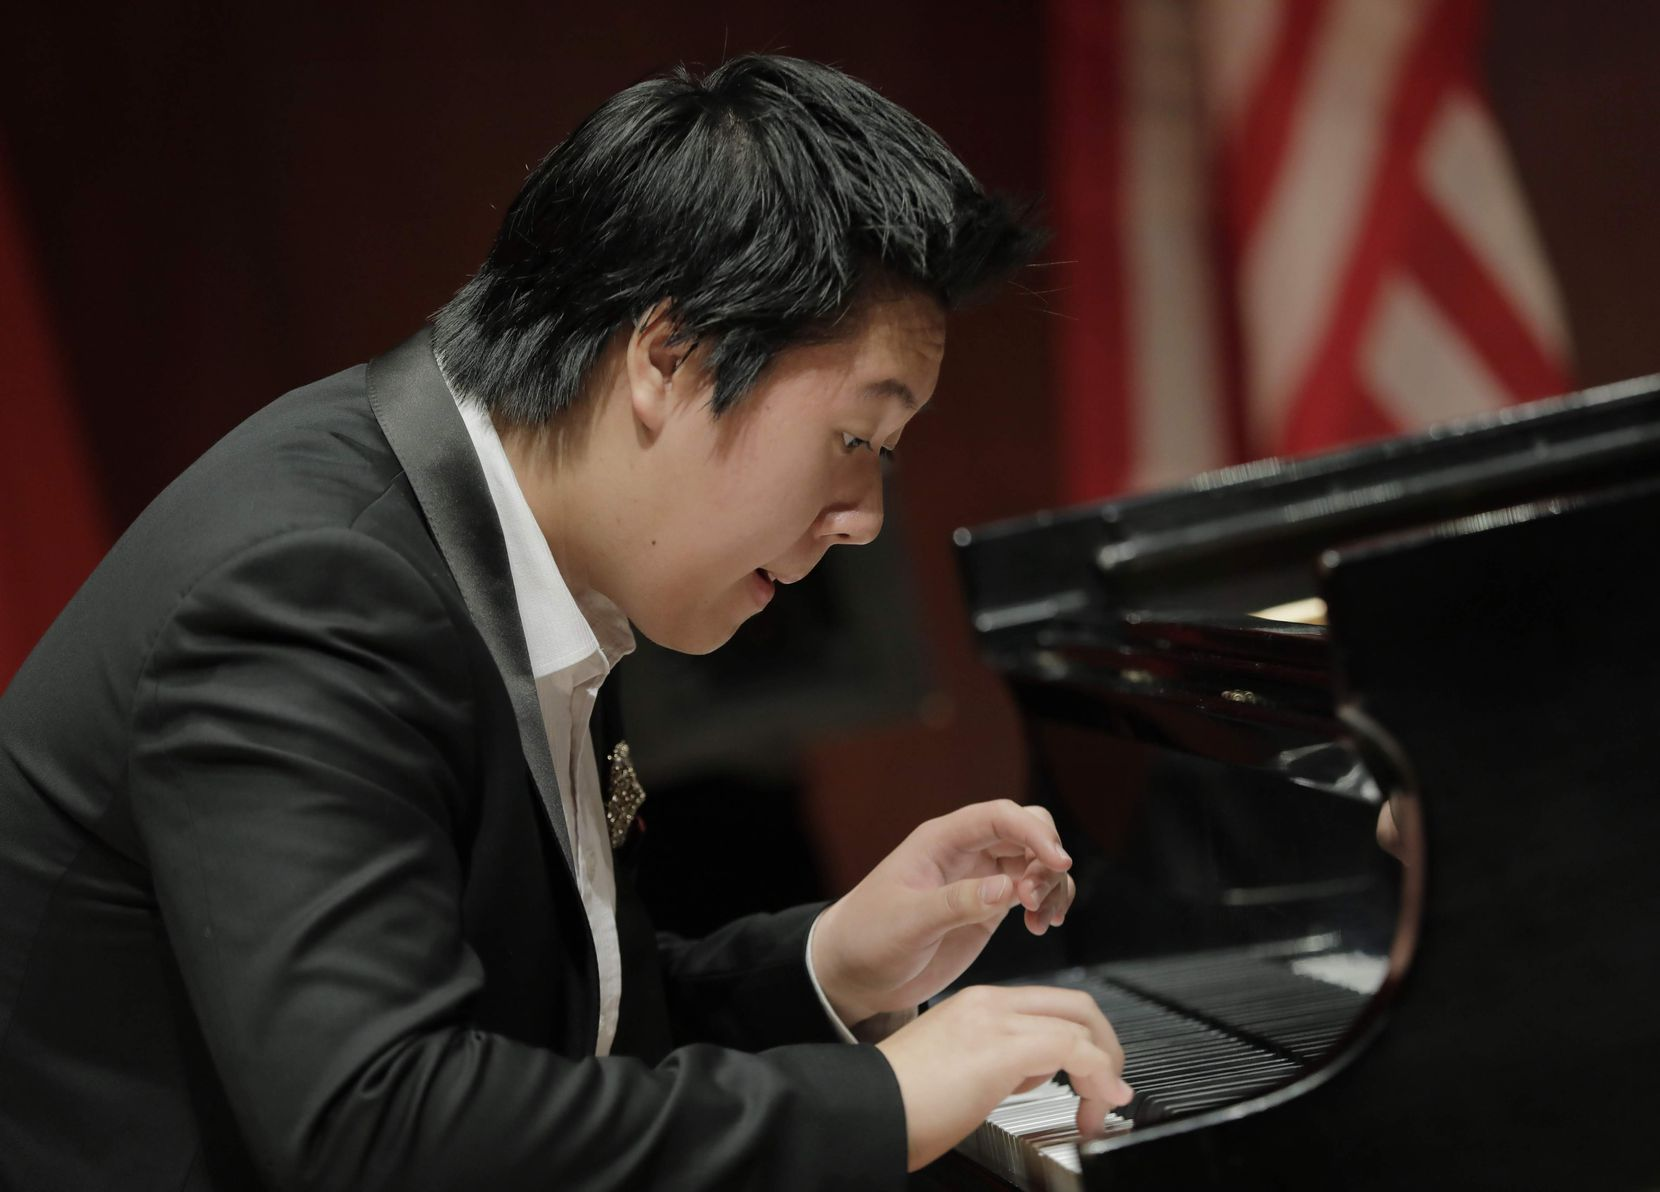 """Shuan Hearn Lee from Australia performed during the Cliburn International Junior Piano Competition and Festival in 2019. The Cliburn on Monday began its """"Cliburn at Home"""" initiative, which includes streamed performances from past Cliburn competitions."""